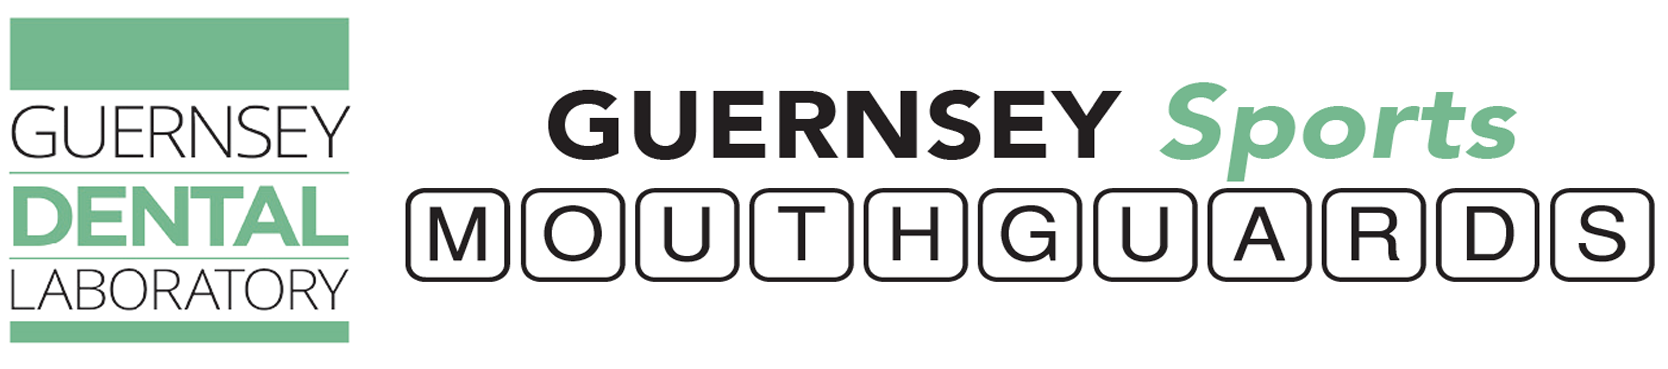 Guernsey Sports Mouthguards Logo